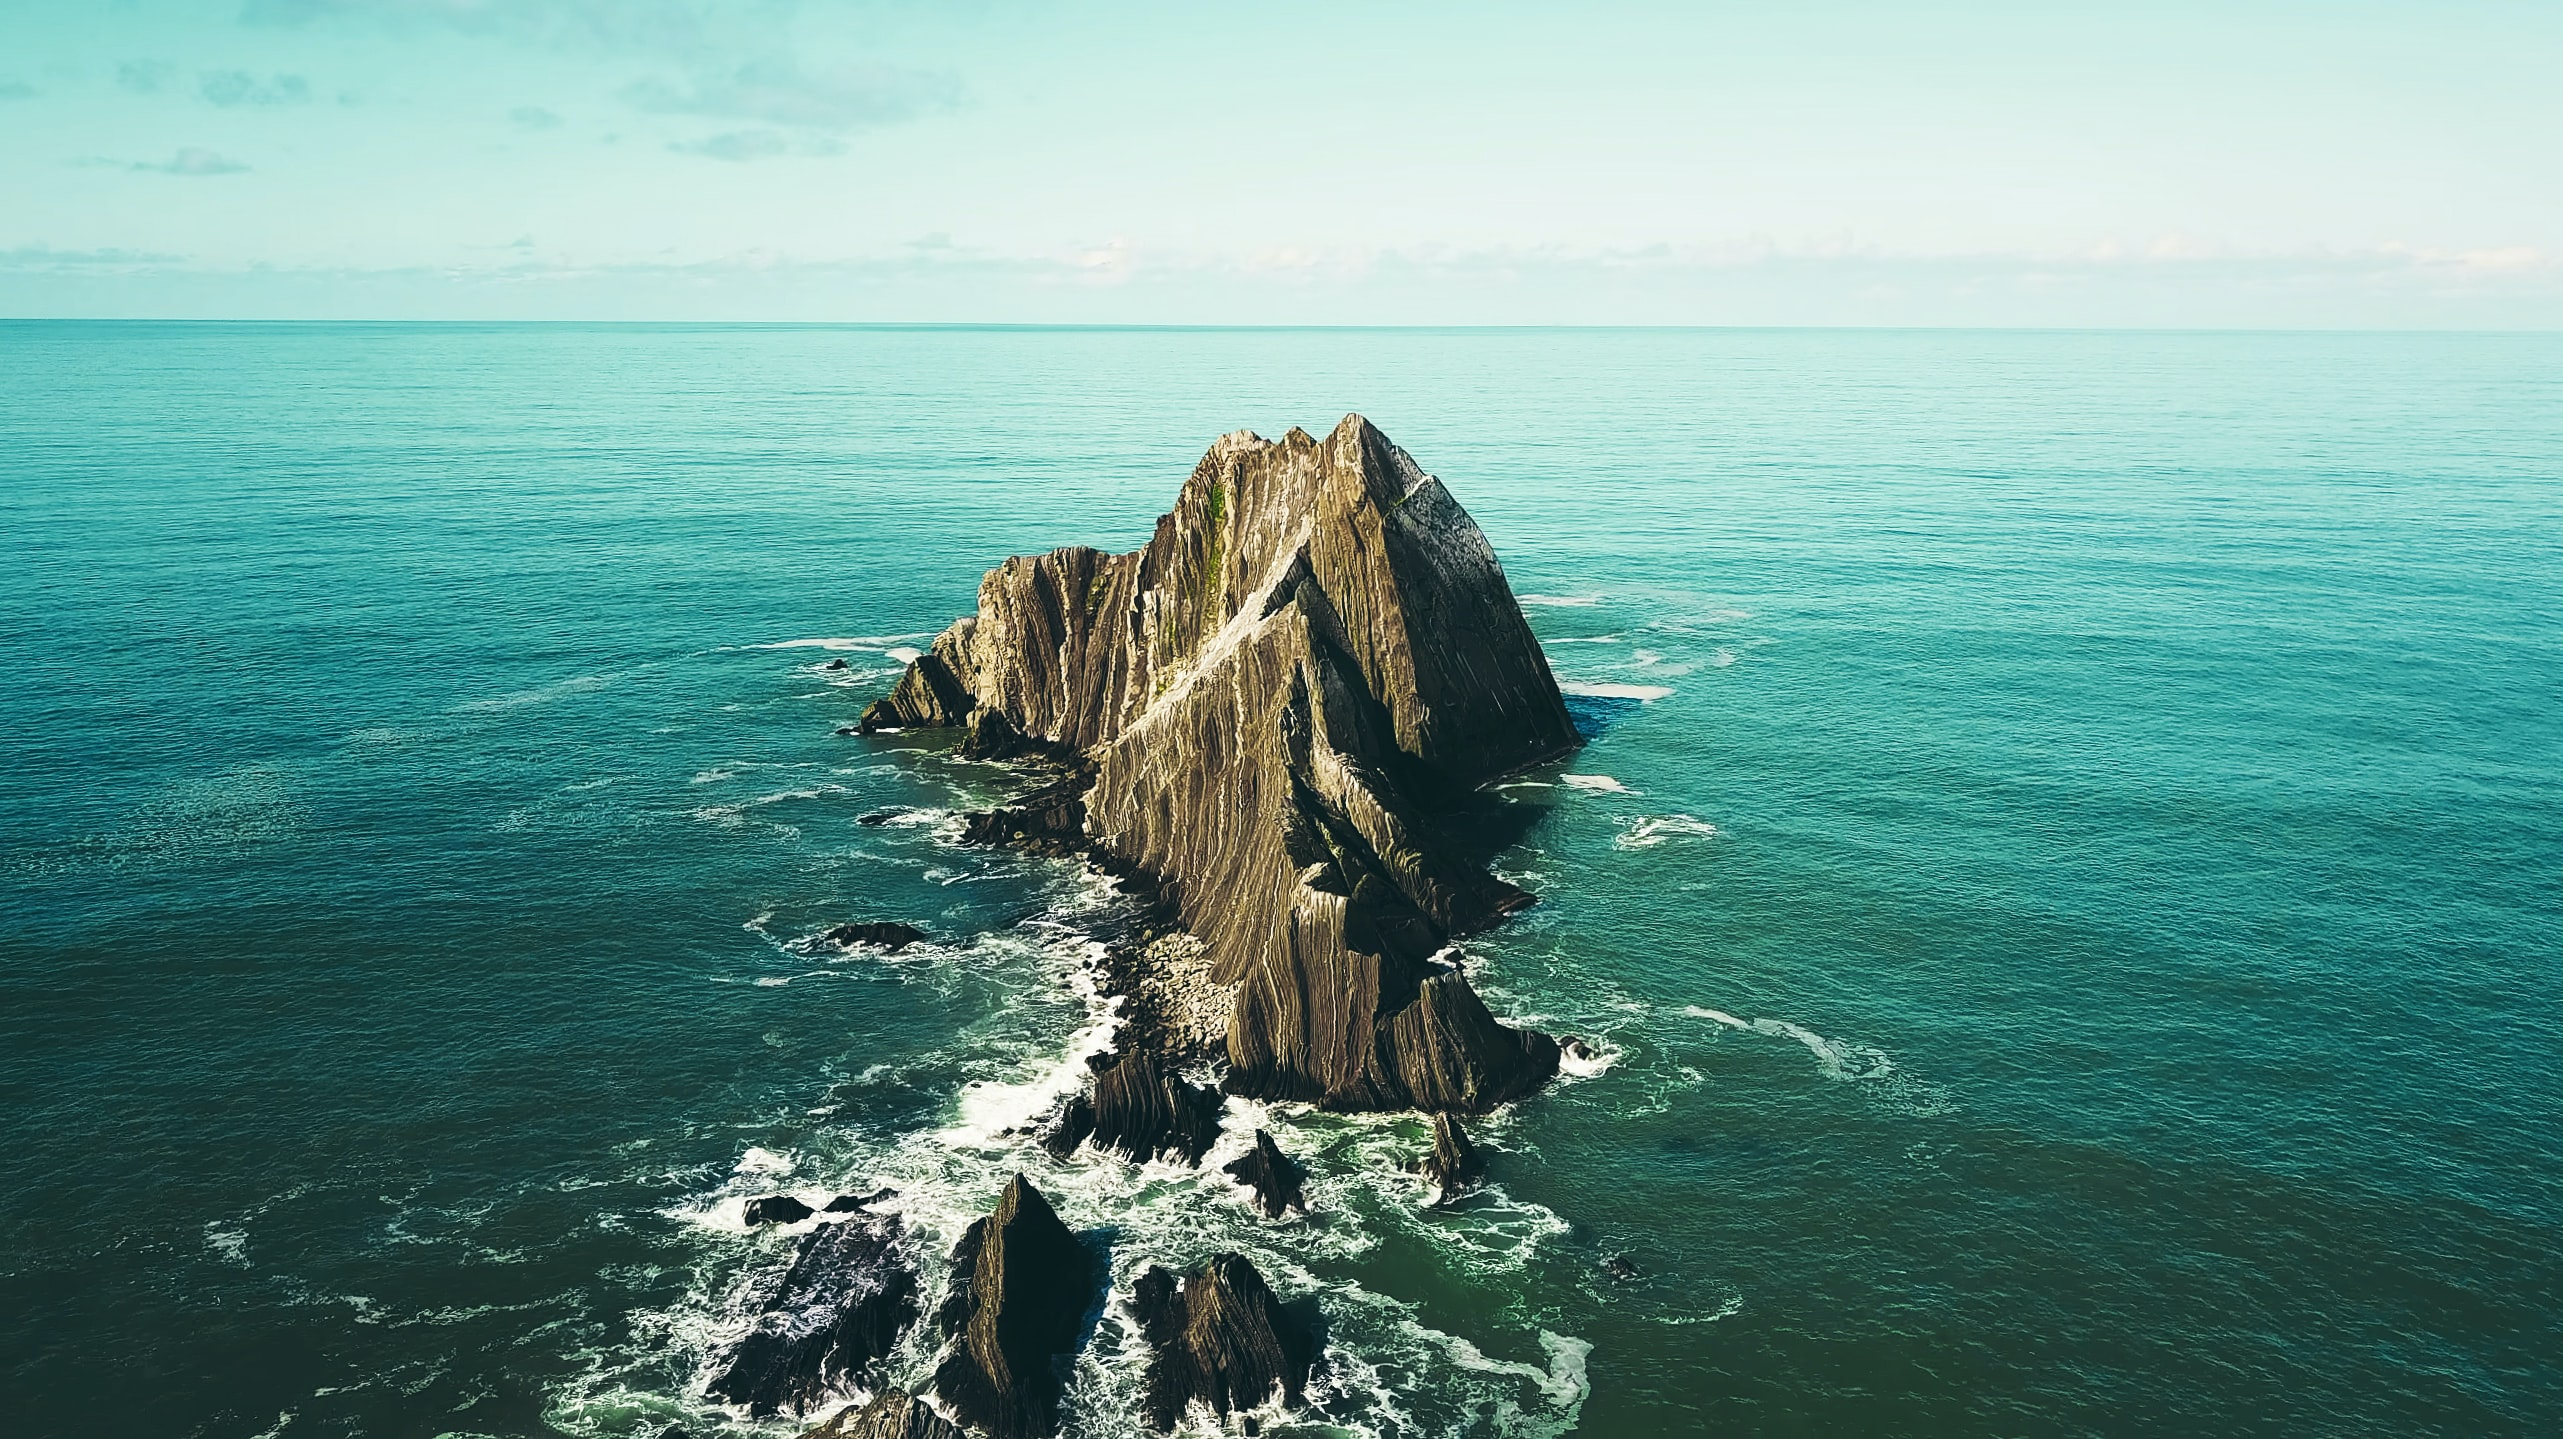 Large rocks jutting out from the ocean